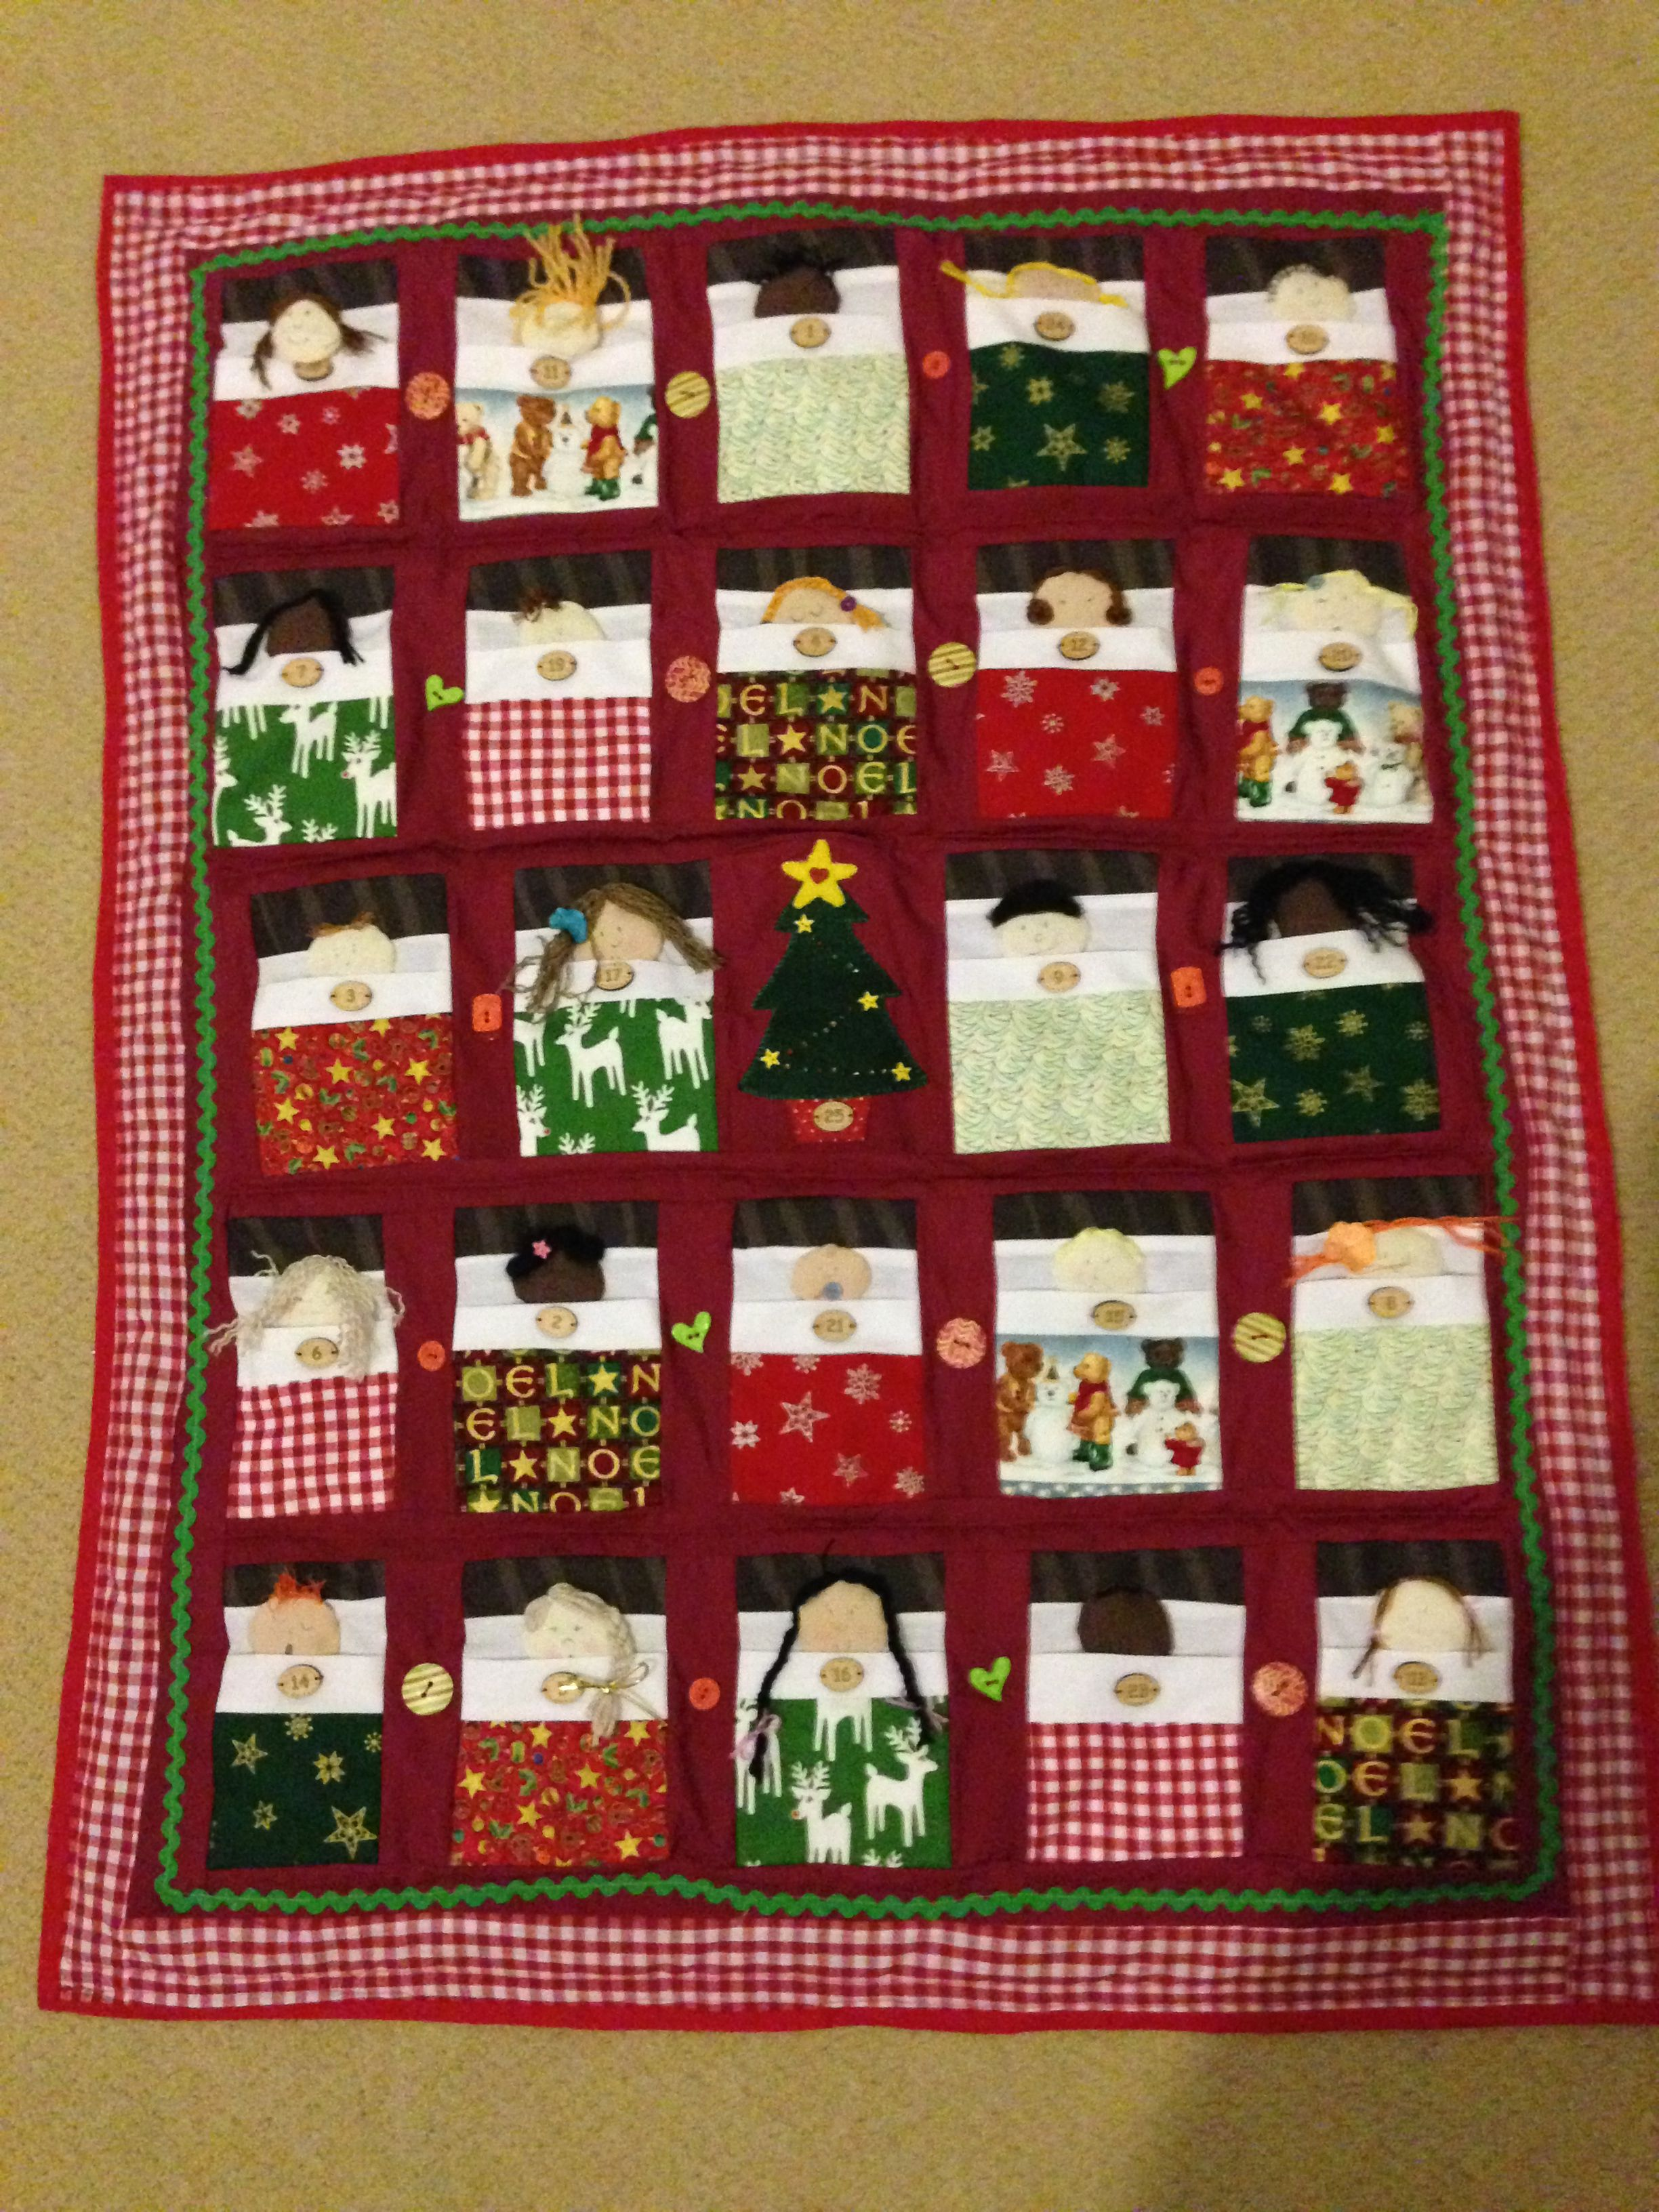 Finished at last! The peacock girls advent calendar